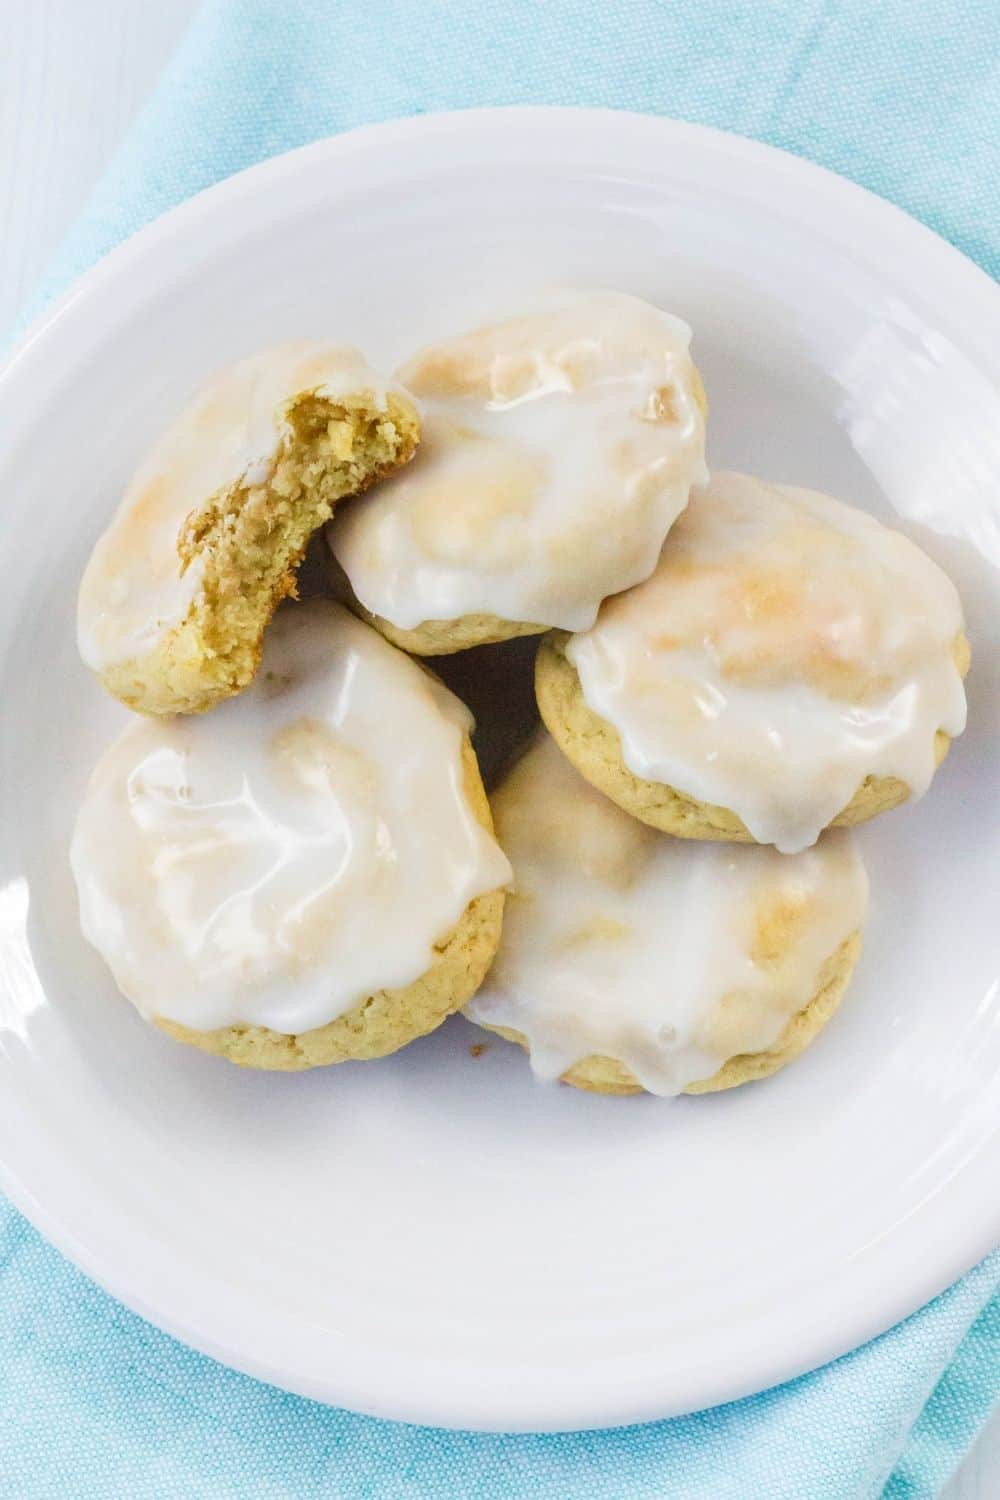 Five iced Hawaiian pineapple cookies on a white plate. One cookie has had a bite taken out of it.